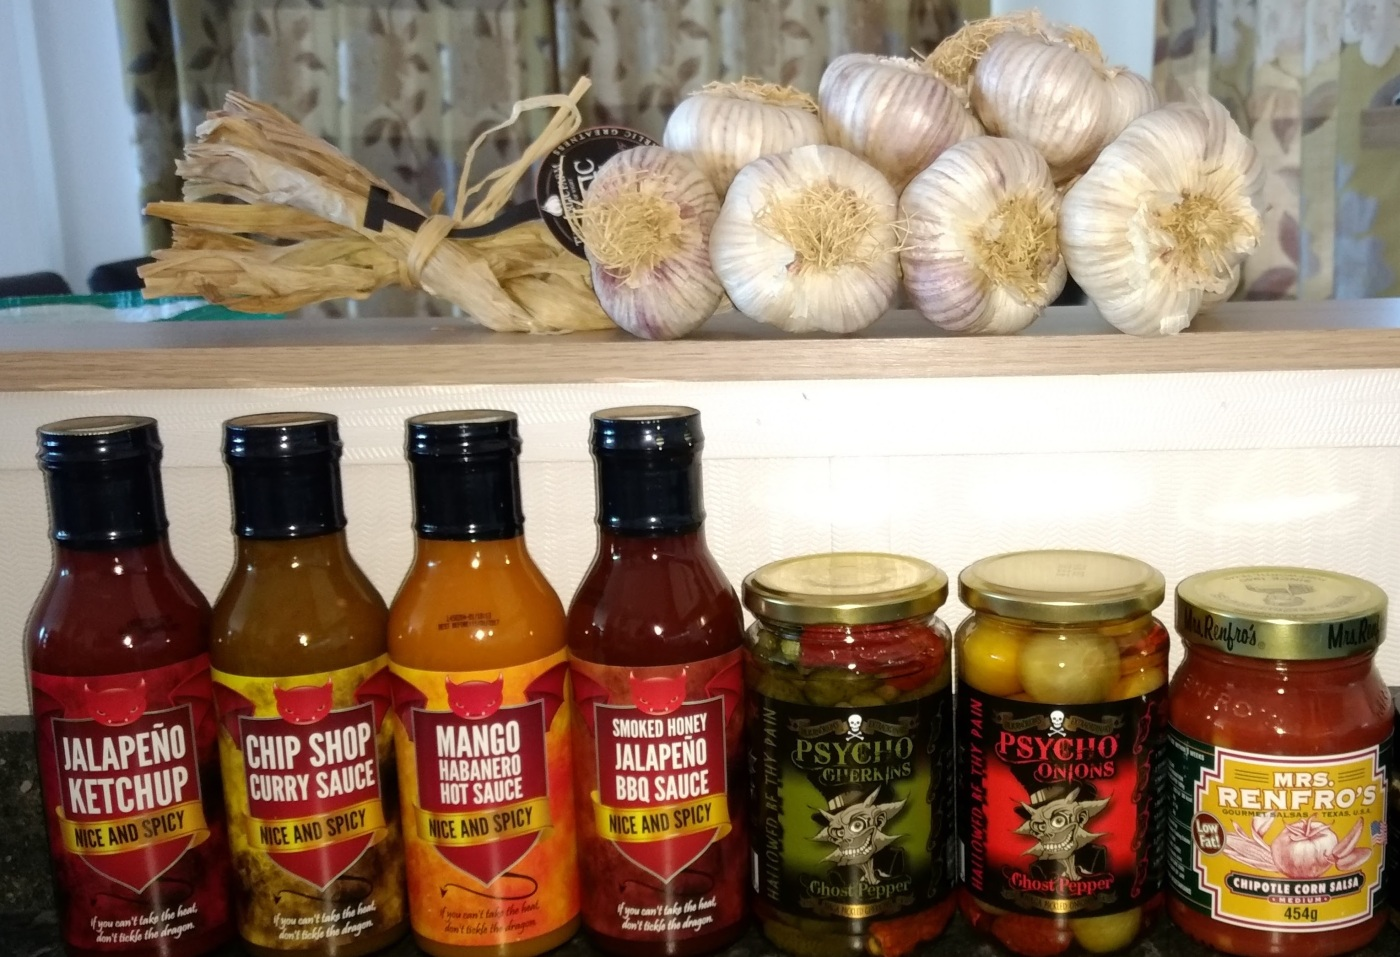 Garlic and chilli sauces